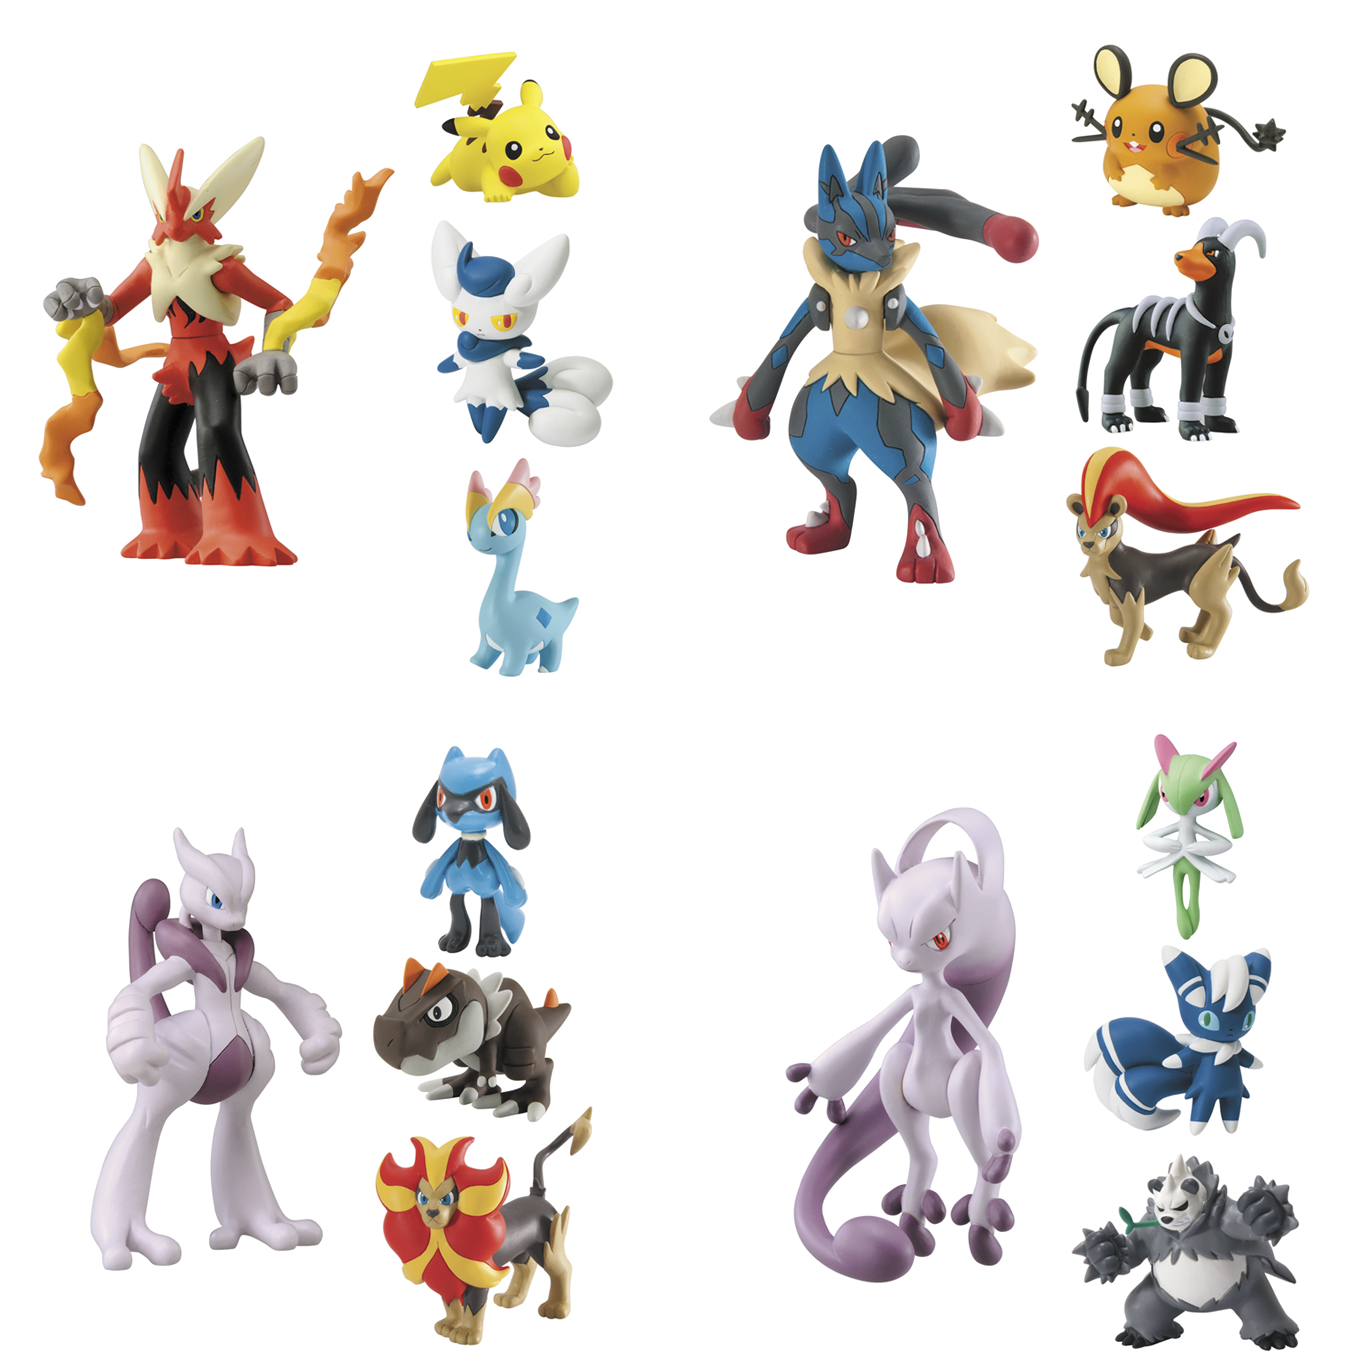 PREVIEWSworld - POKEMON X & Y GIFT PACK 4PK MINI FIG 4PC ...